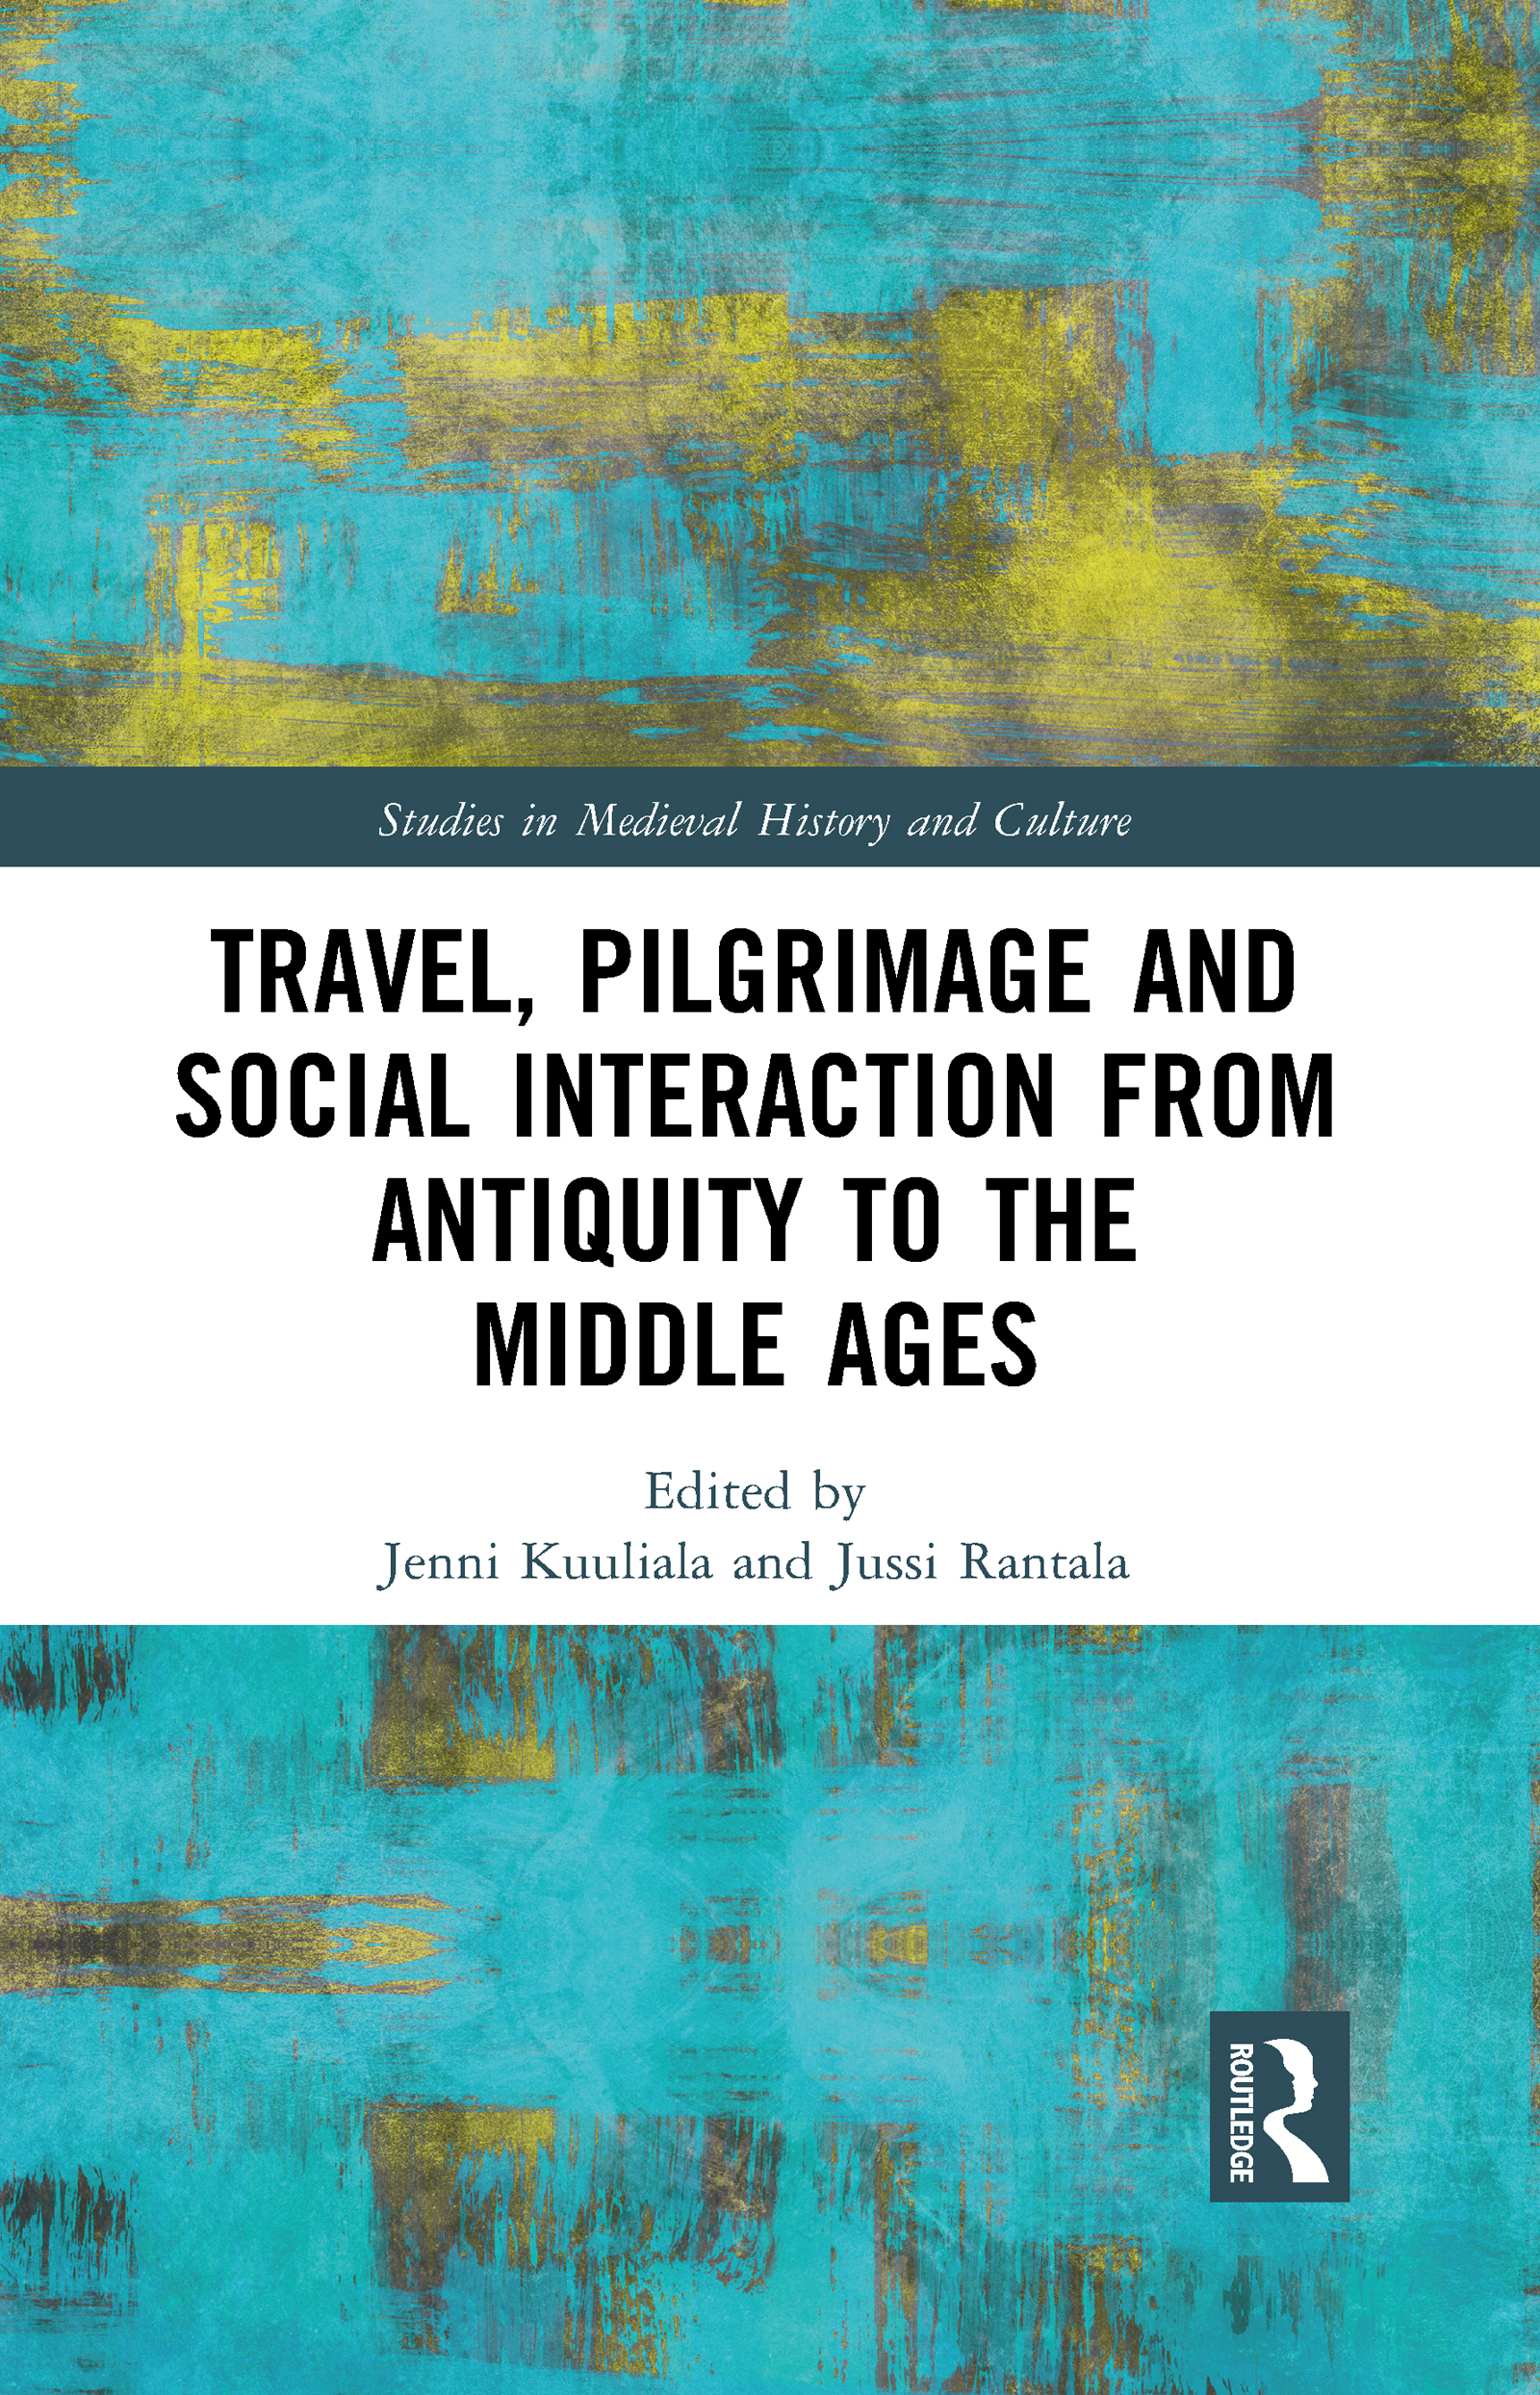 Travel, Pilgrimage and Social Interaction from Antiquity to the Middle Ages